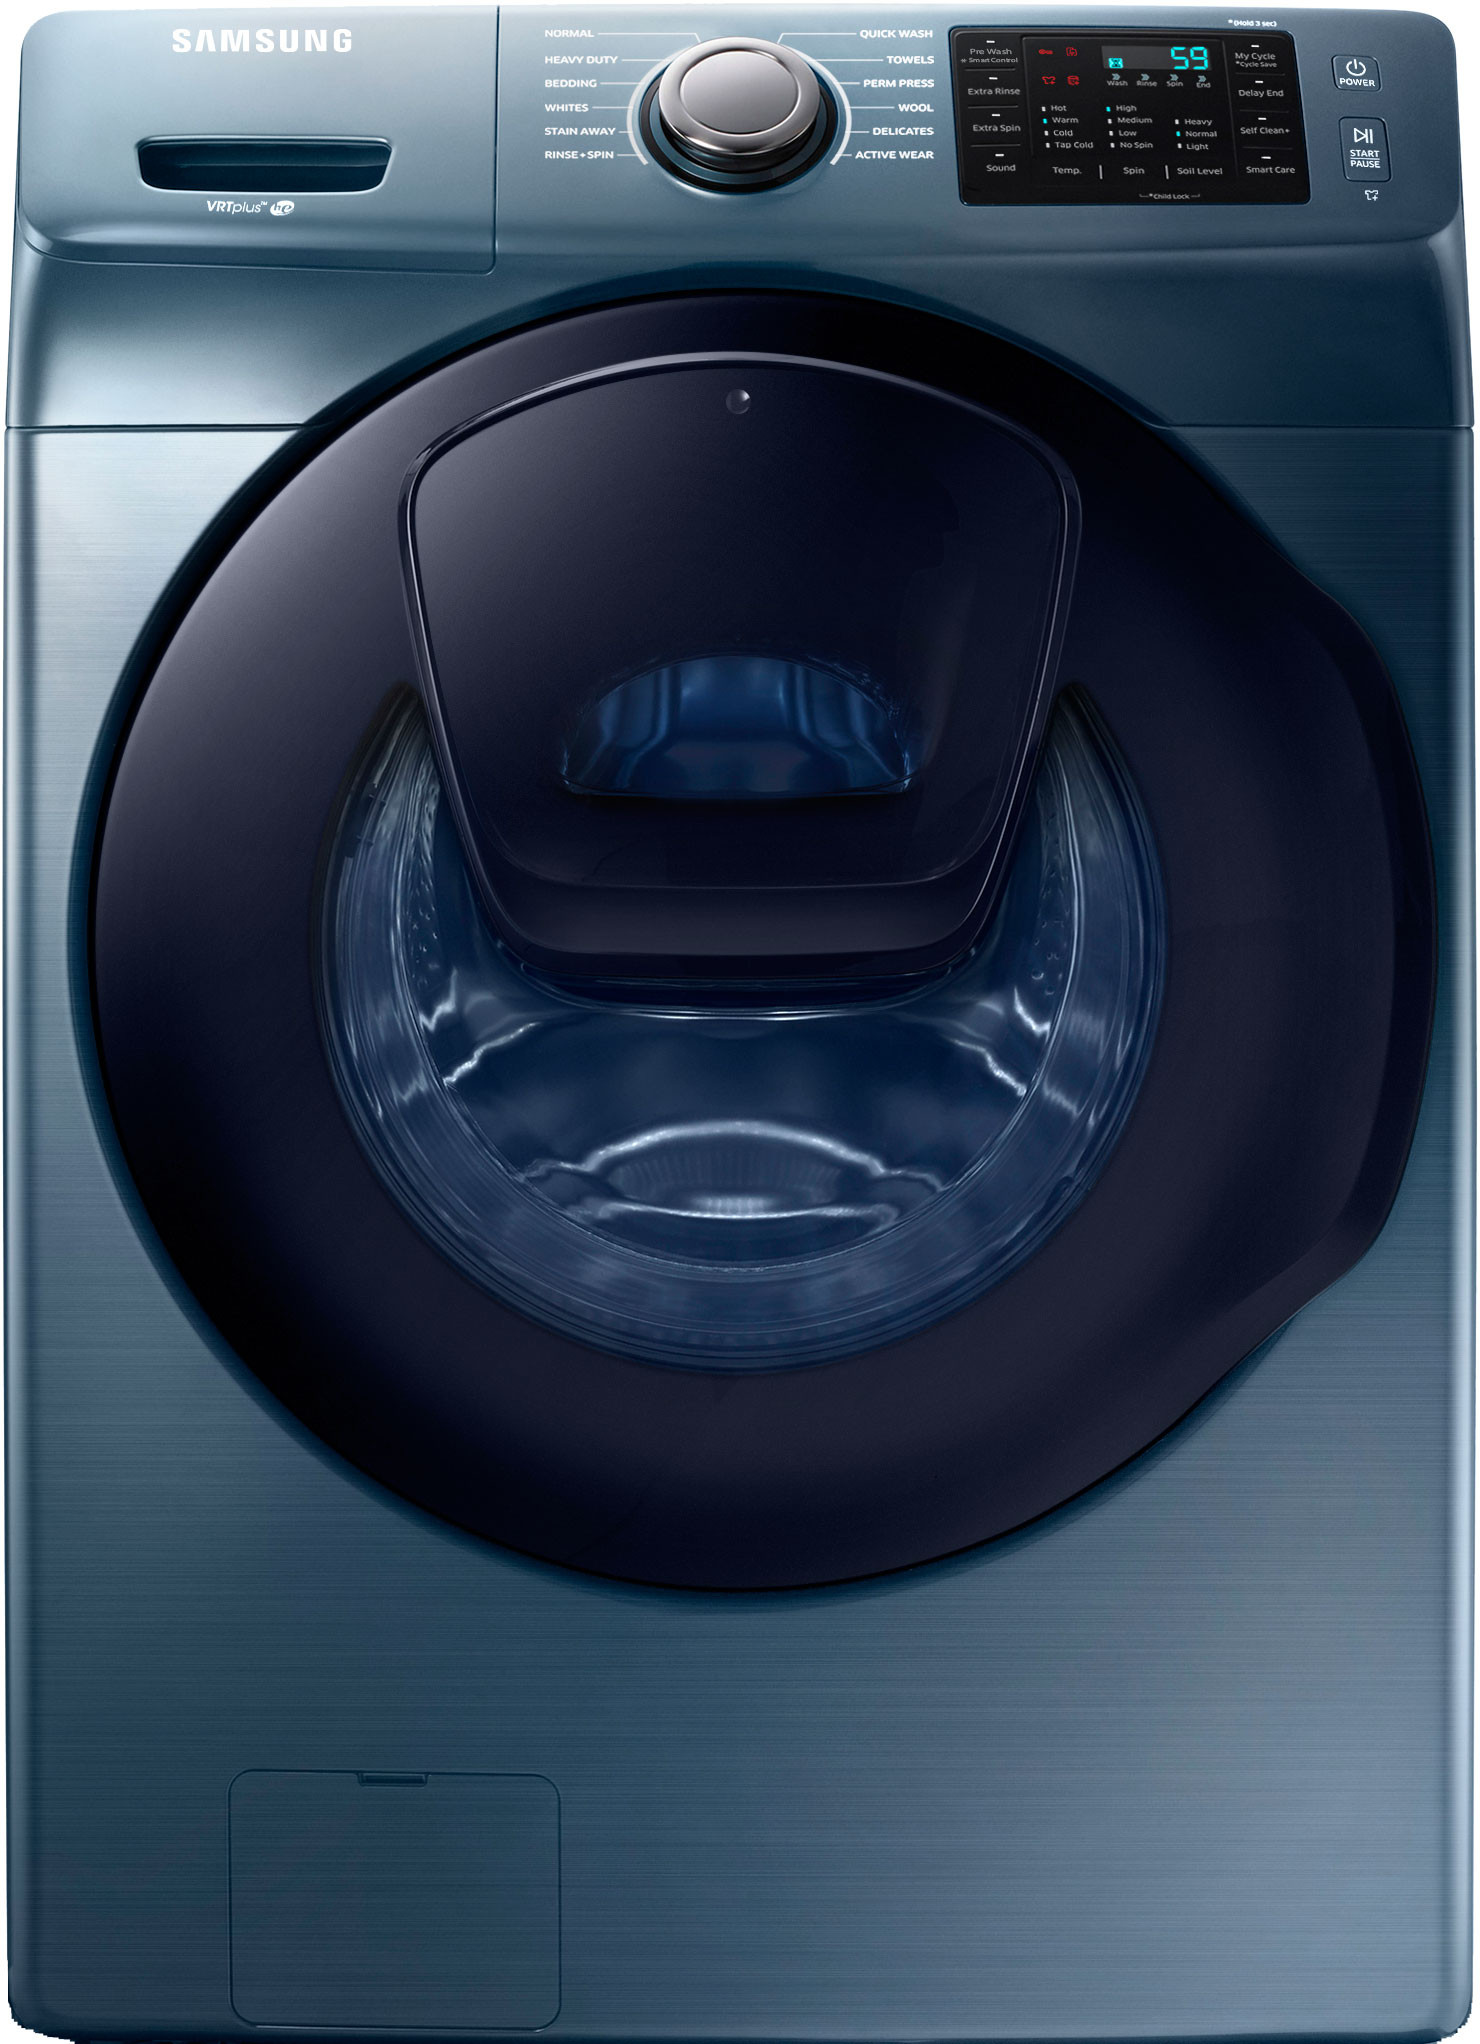 Samsung Wf45k6200az 27 Inch 4 5 Cu Ft Front Load Washer With Addwash 12 Preset Wash Cycles 10 Options 1 300 Rpm Smart Care Vibration Reduction